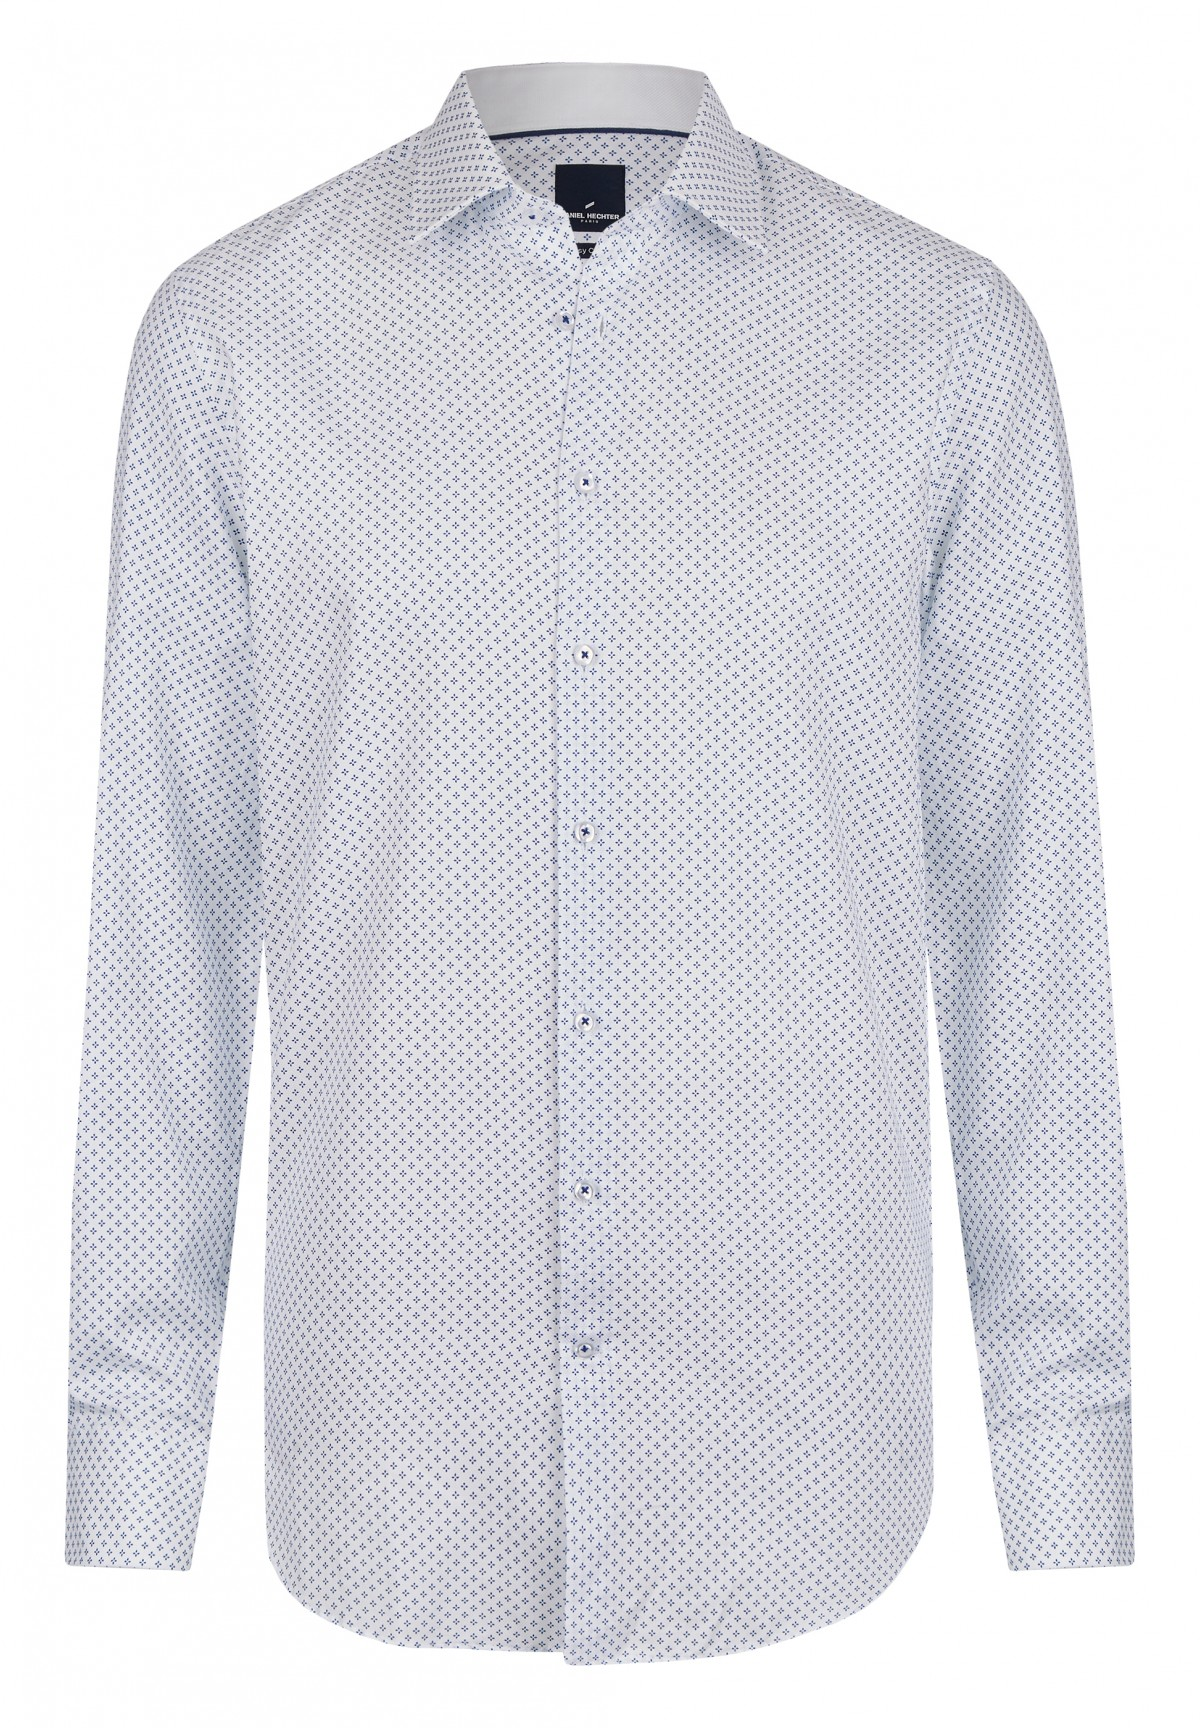 Lässiges City Hemd / SHIRT MODERN FIT